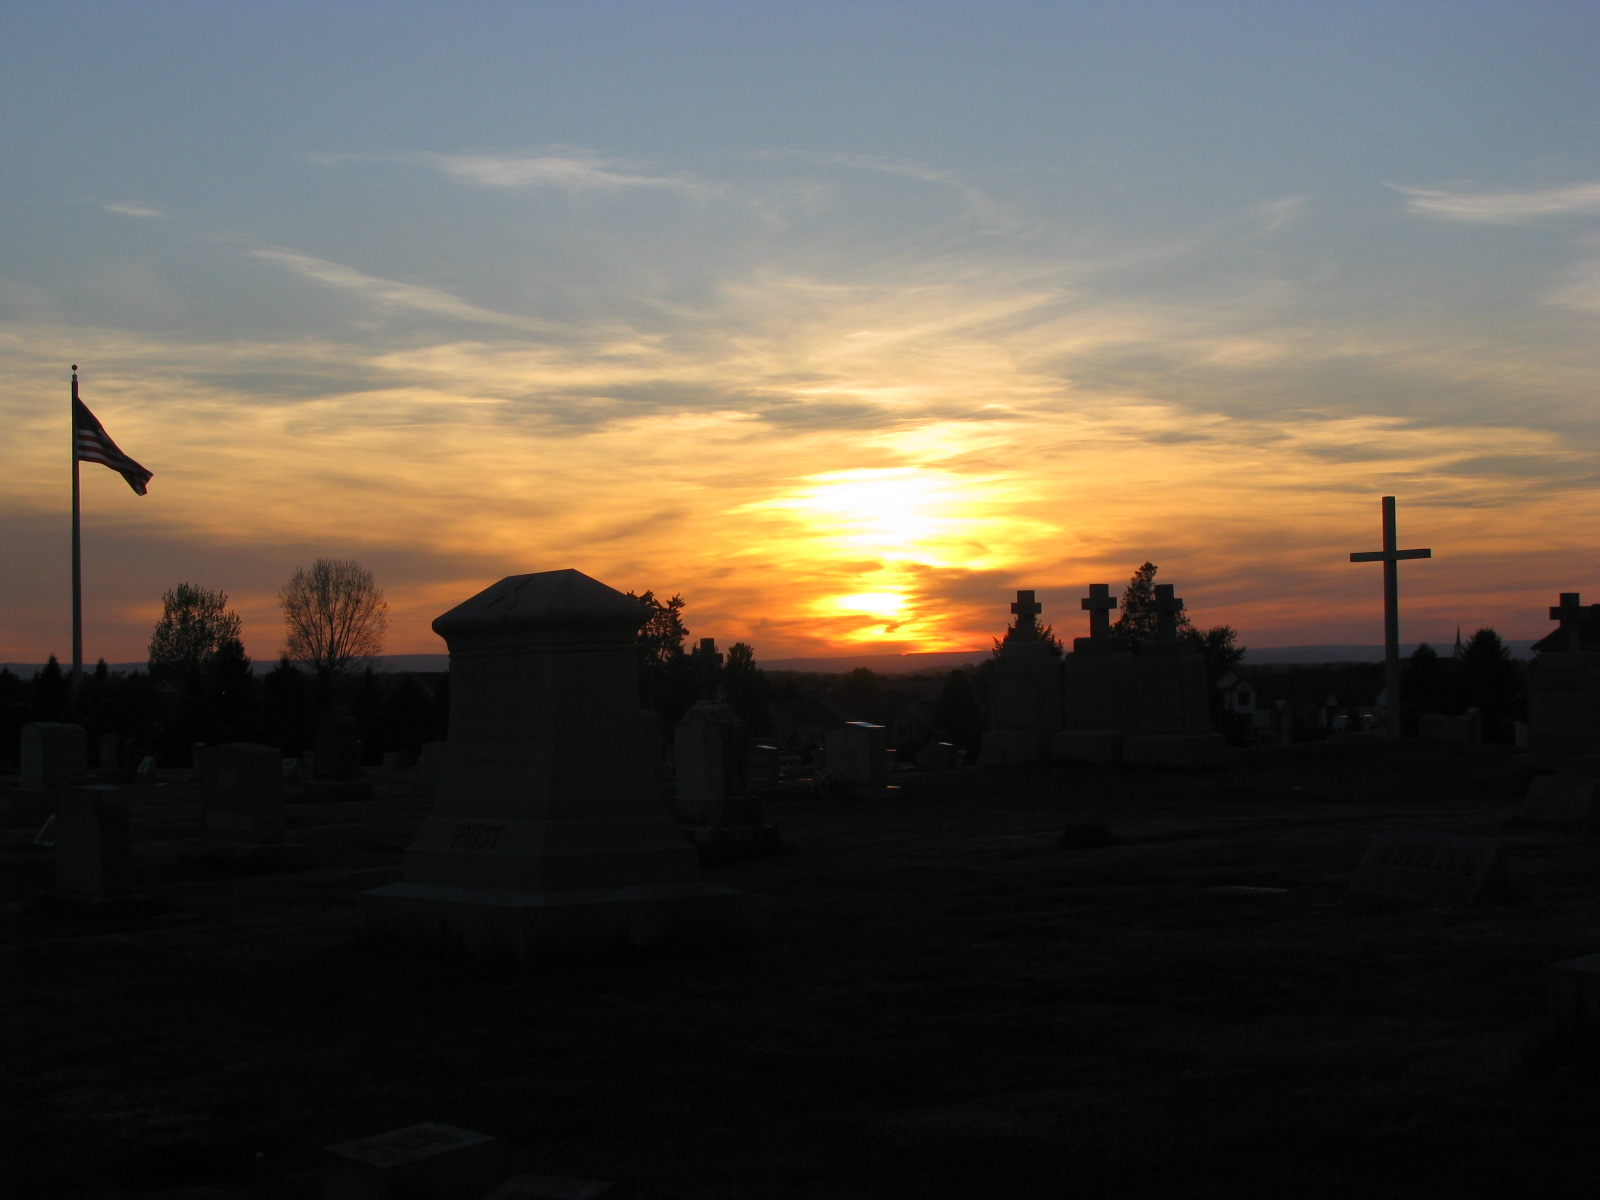 Annunciation of the Blessed Virgin Mary Cemetery